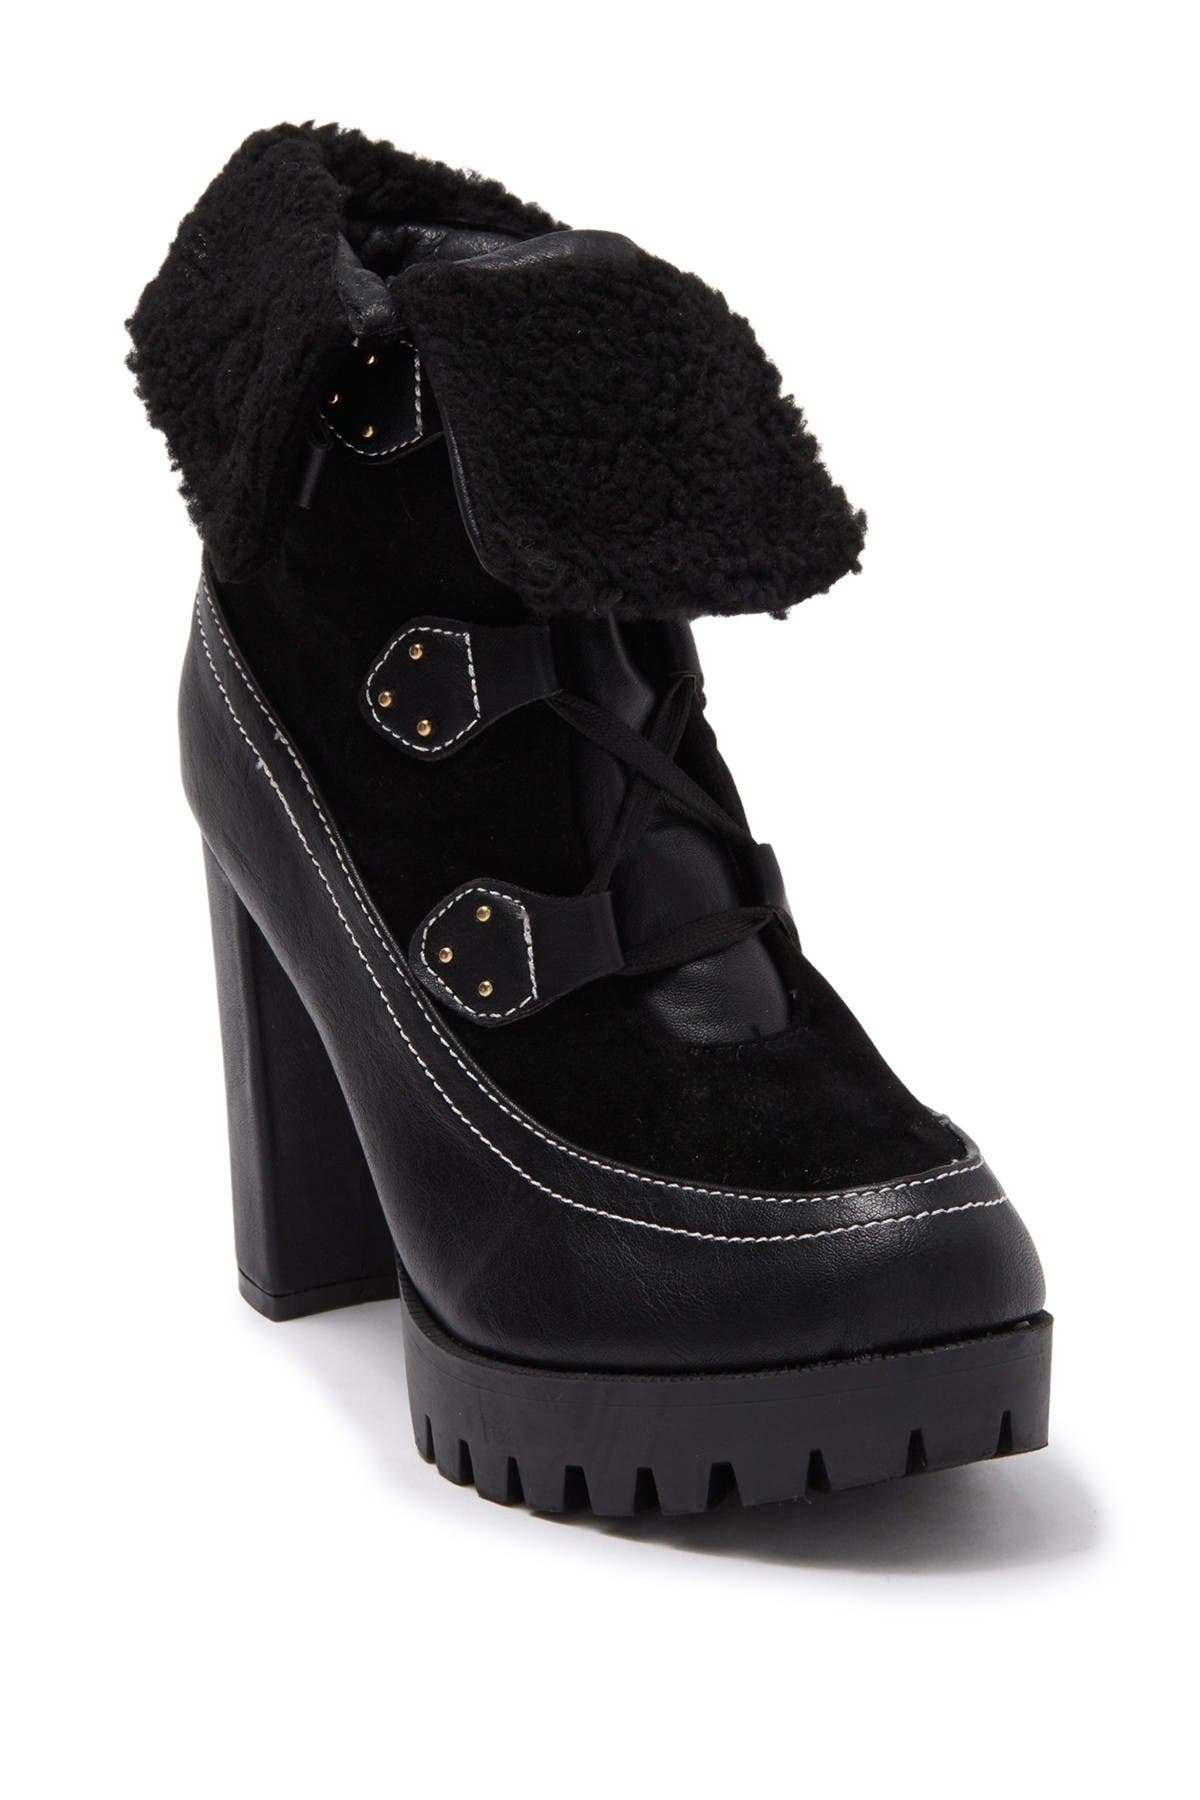 Image of Chase & Chloe Faux Shearling Lug Sole Boot